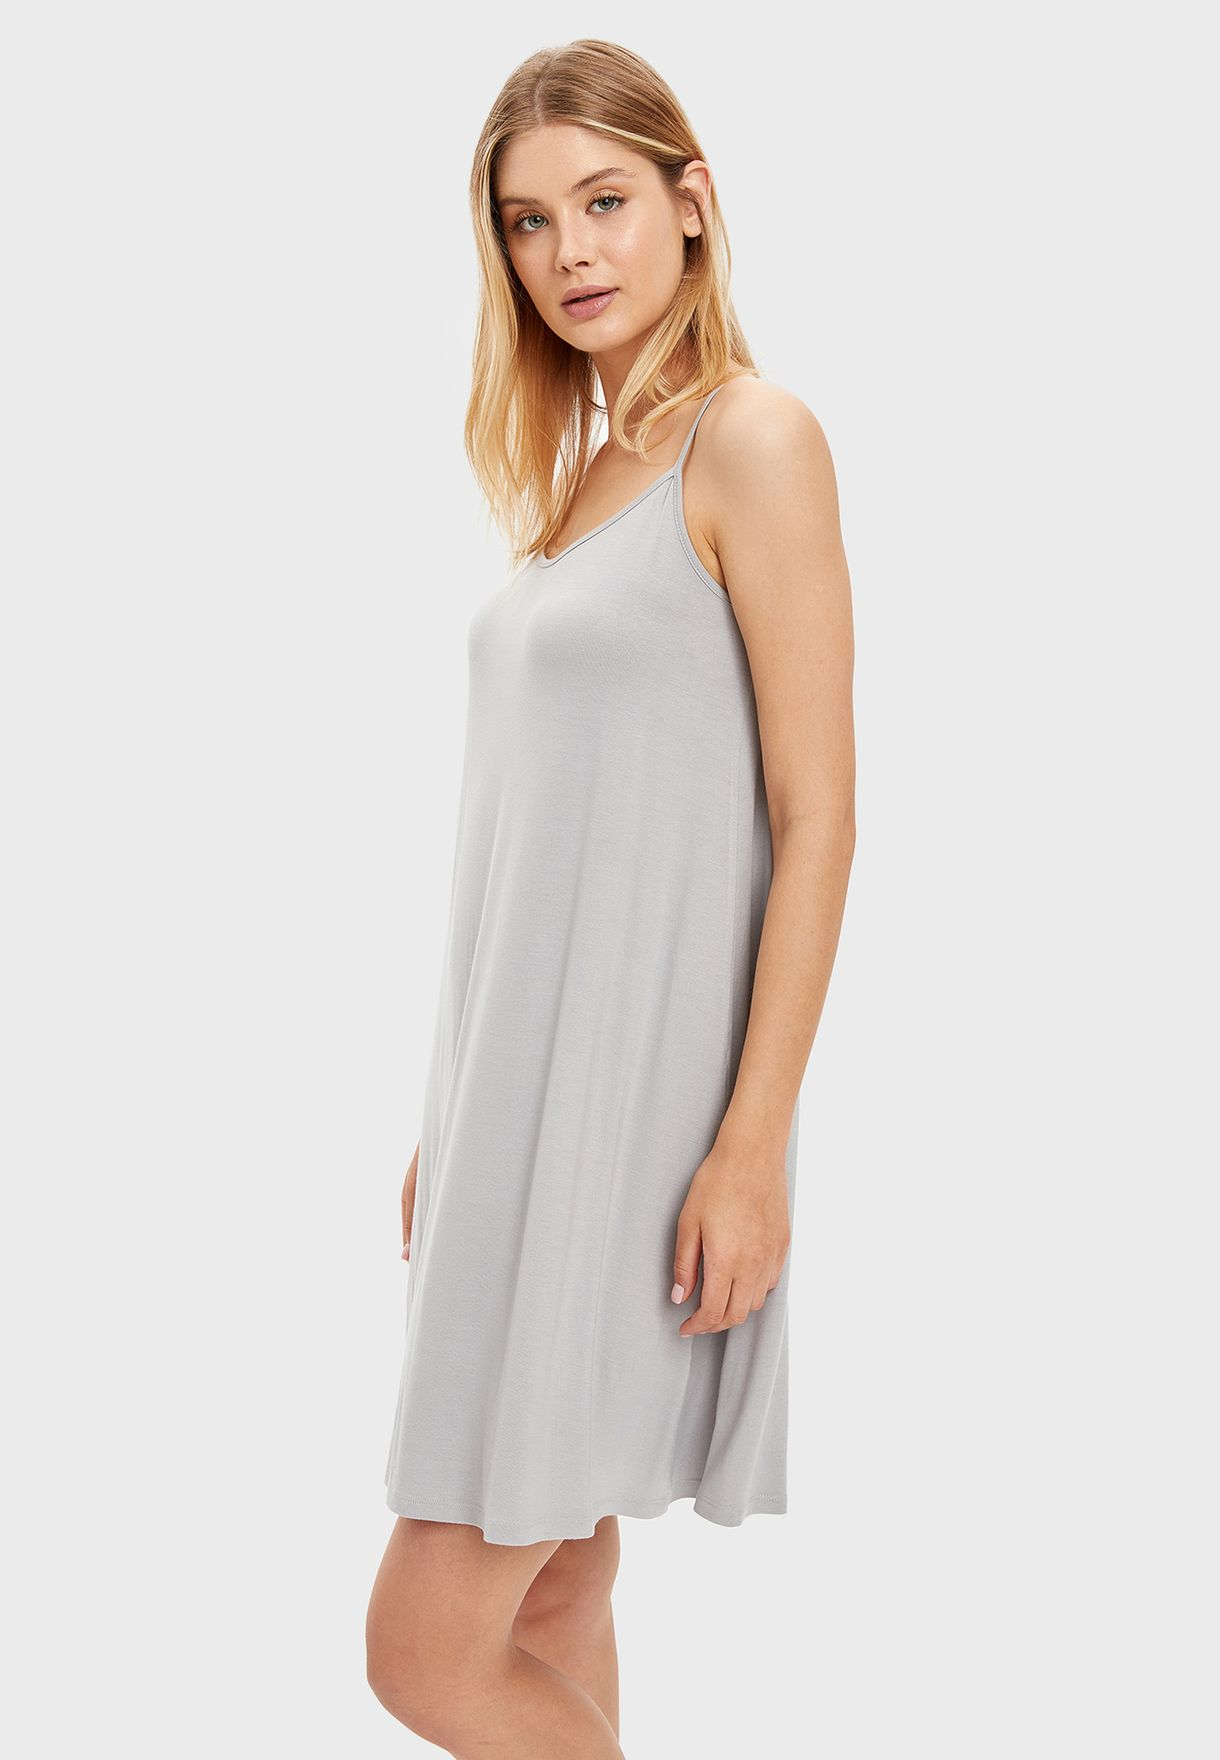 Cami Nightdress